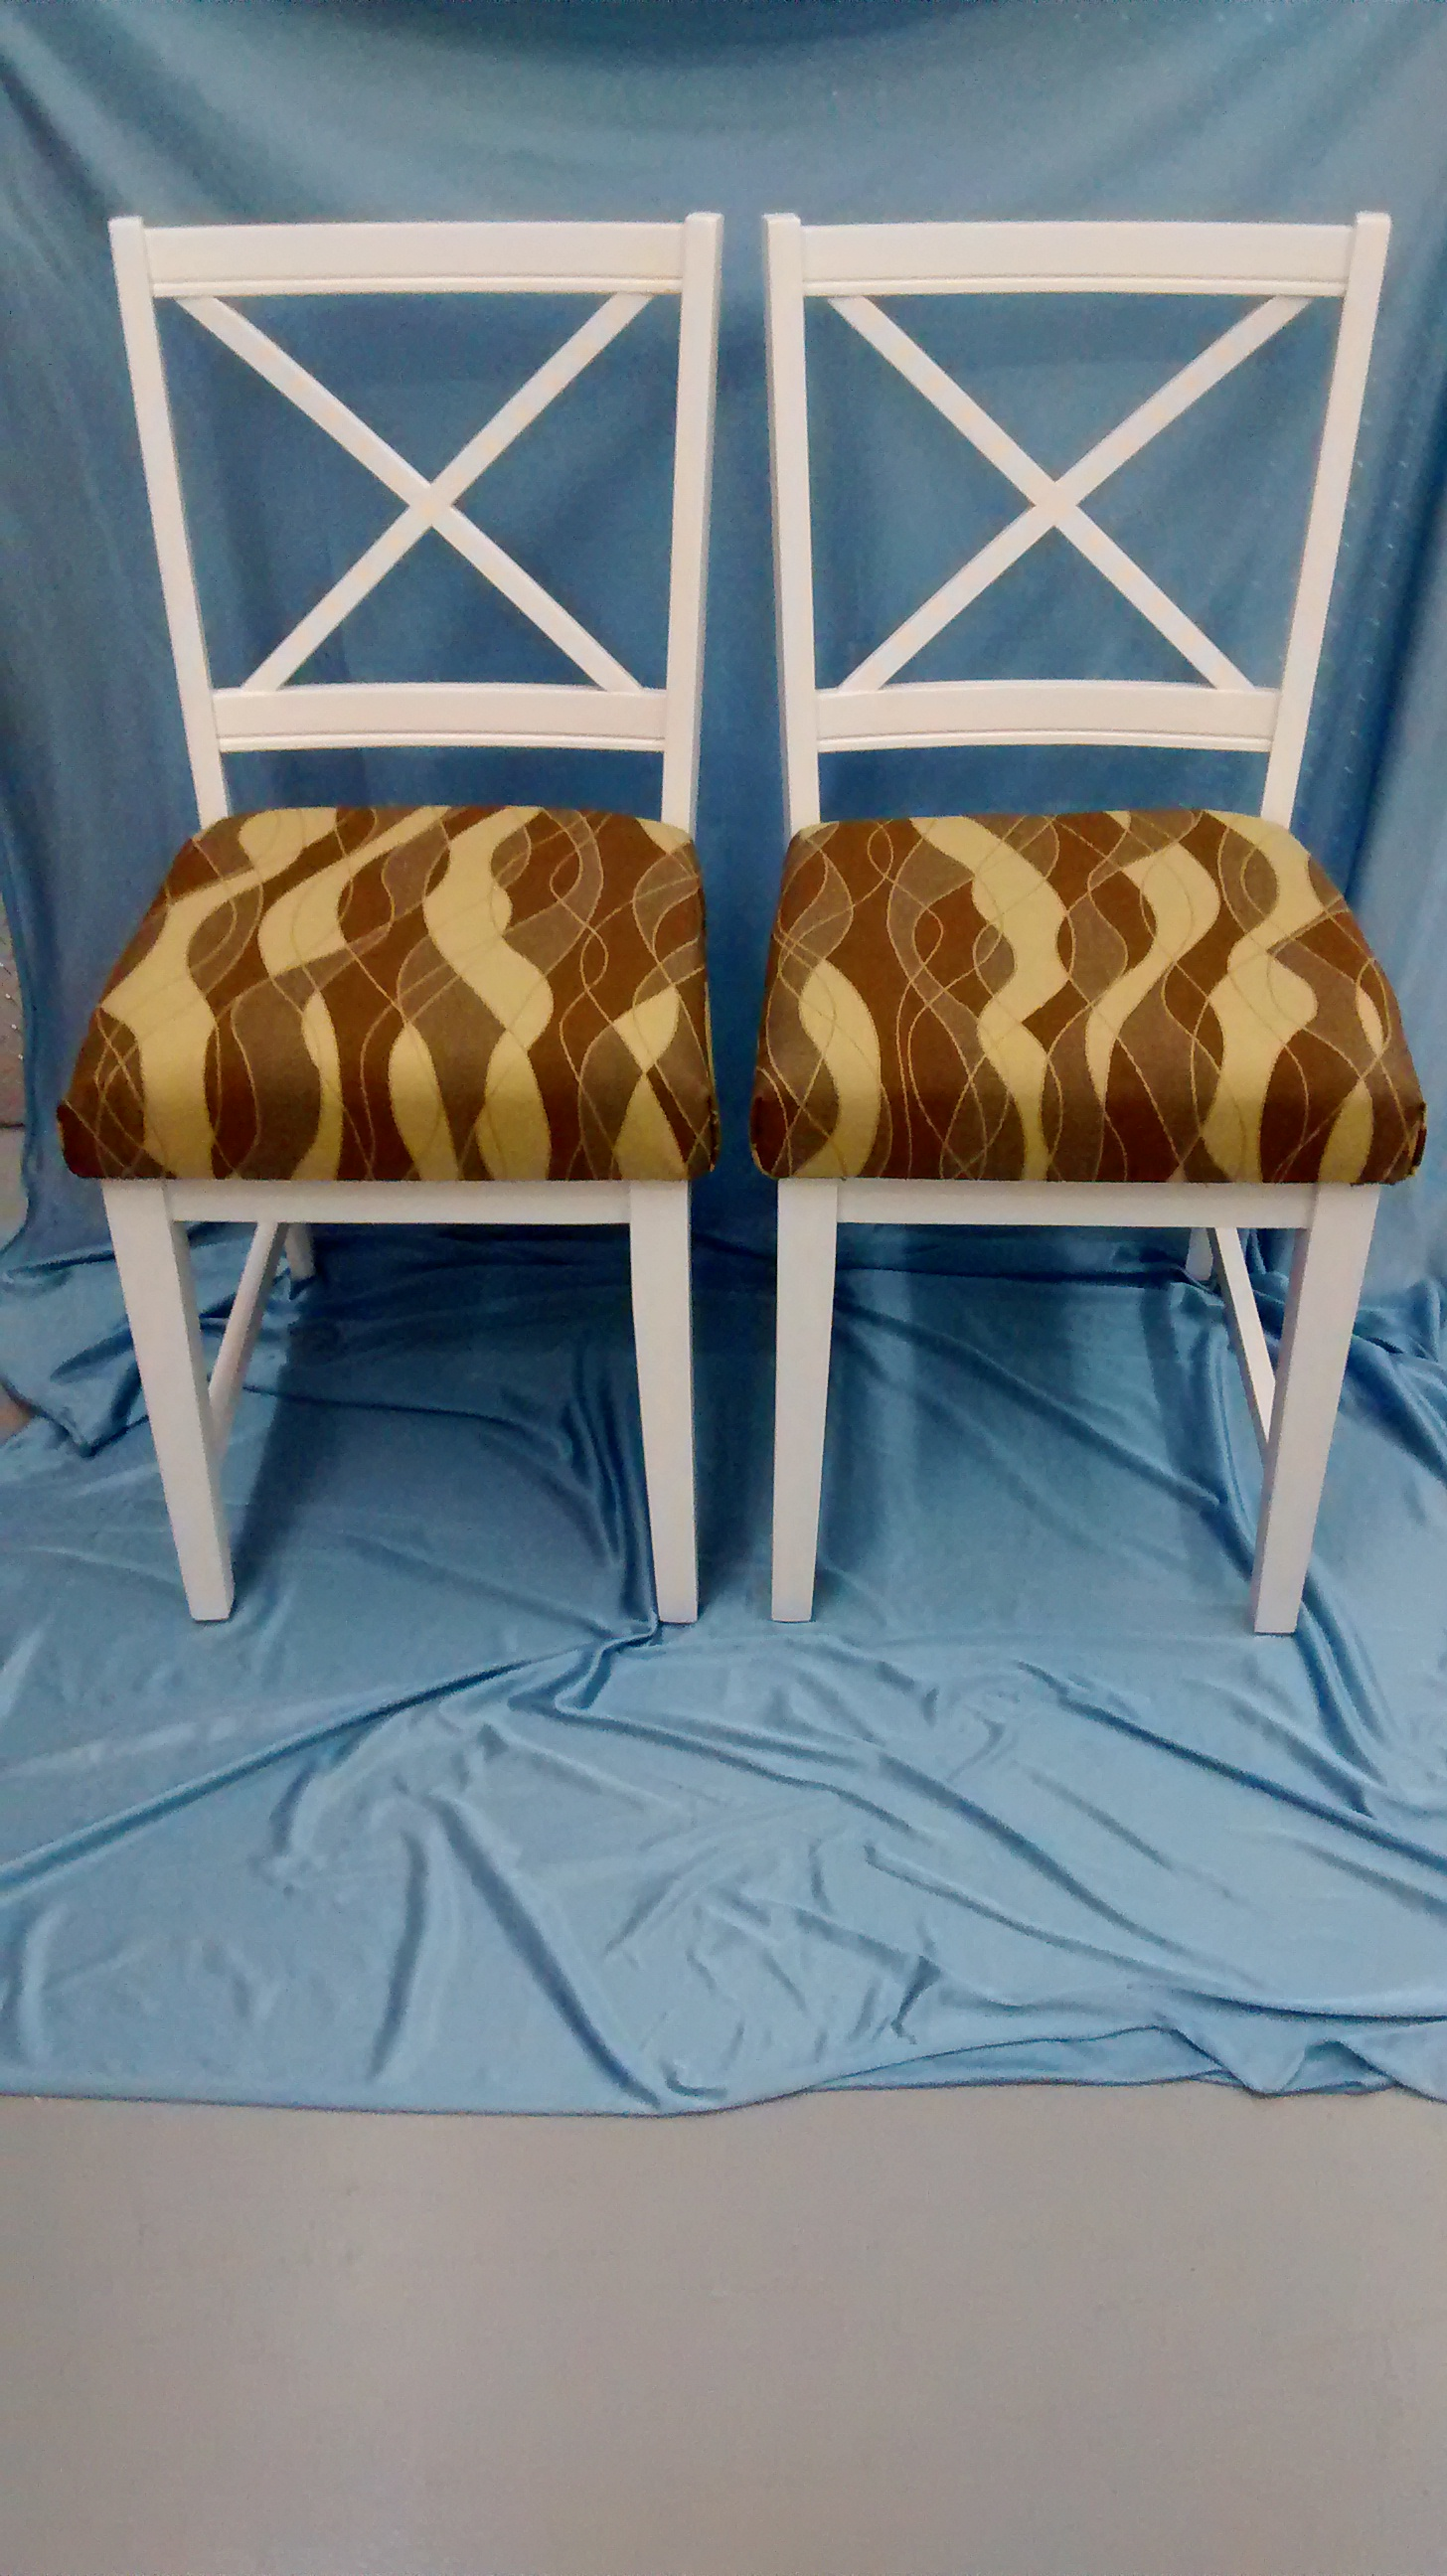 Pair of Wooden Chairs with New Comfy Cushions